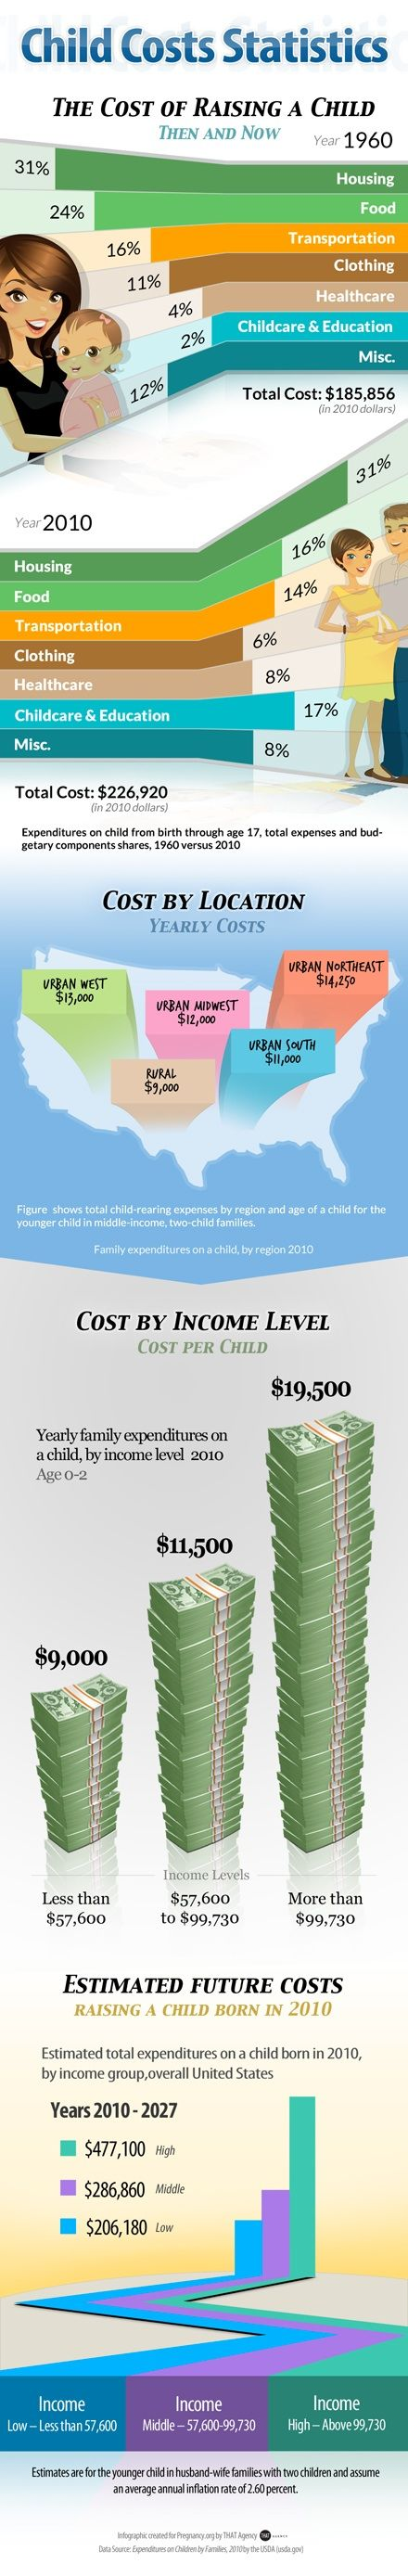 Parenting 1.5 The Cost of Raising a Child